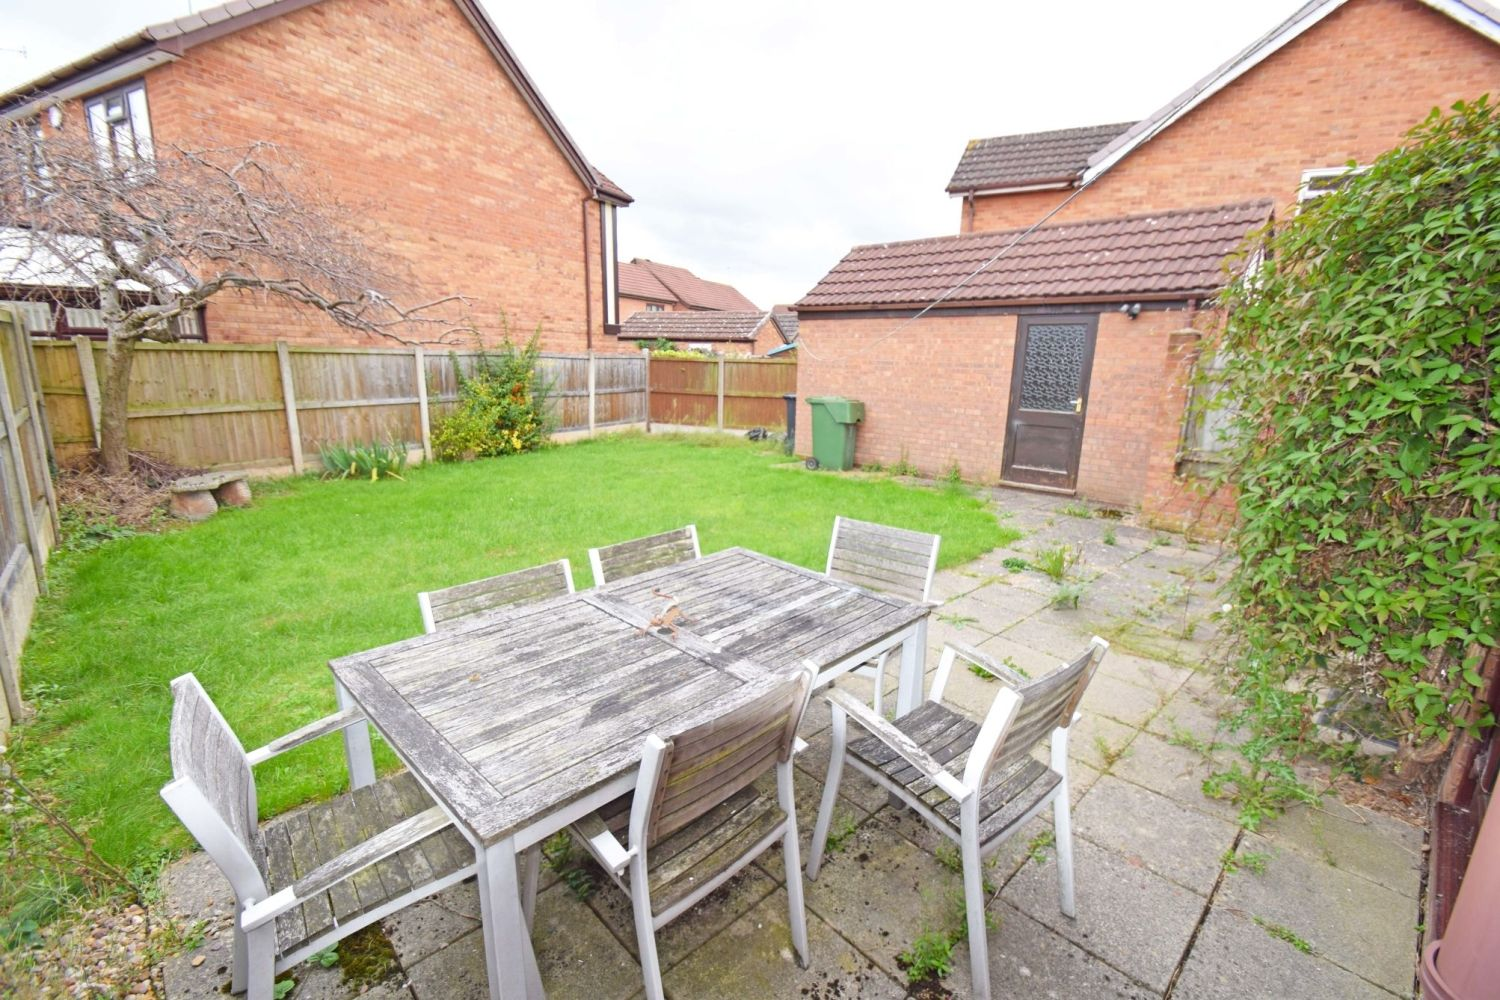 3 bed detached for sale in Avon Close, Stoke Heath, Bromsgrove, B60  - Property Image 12